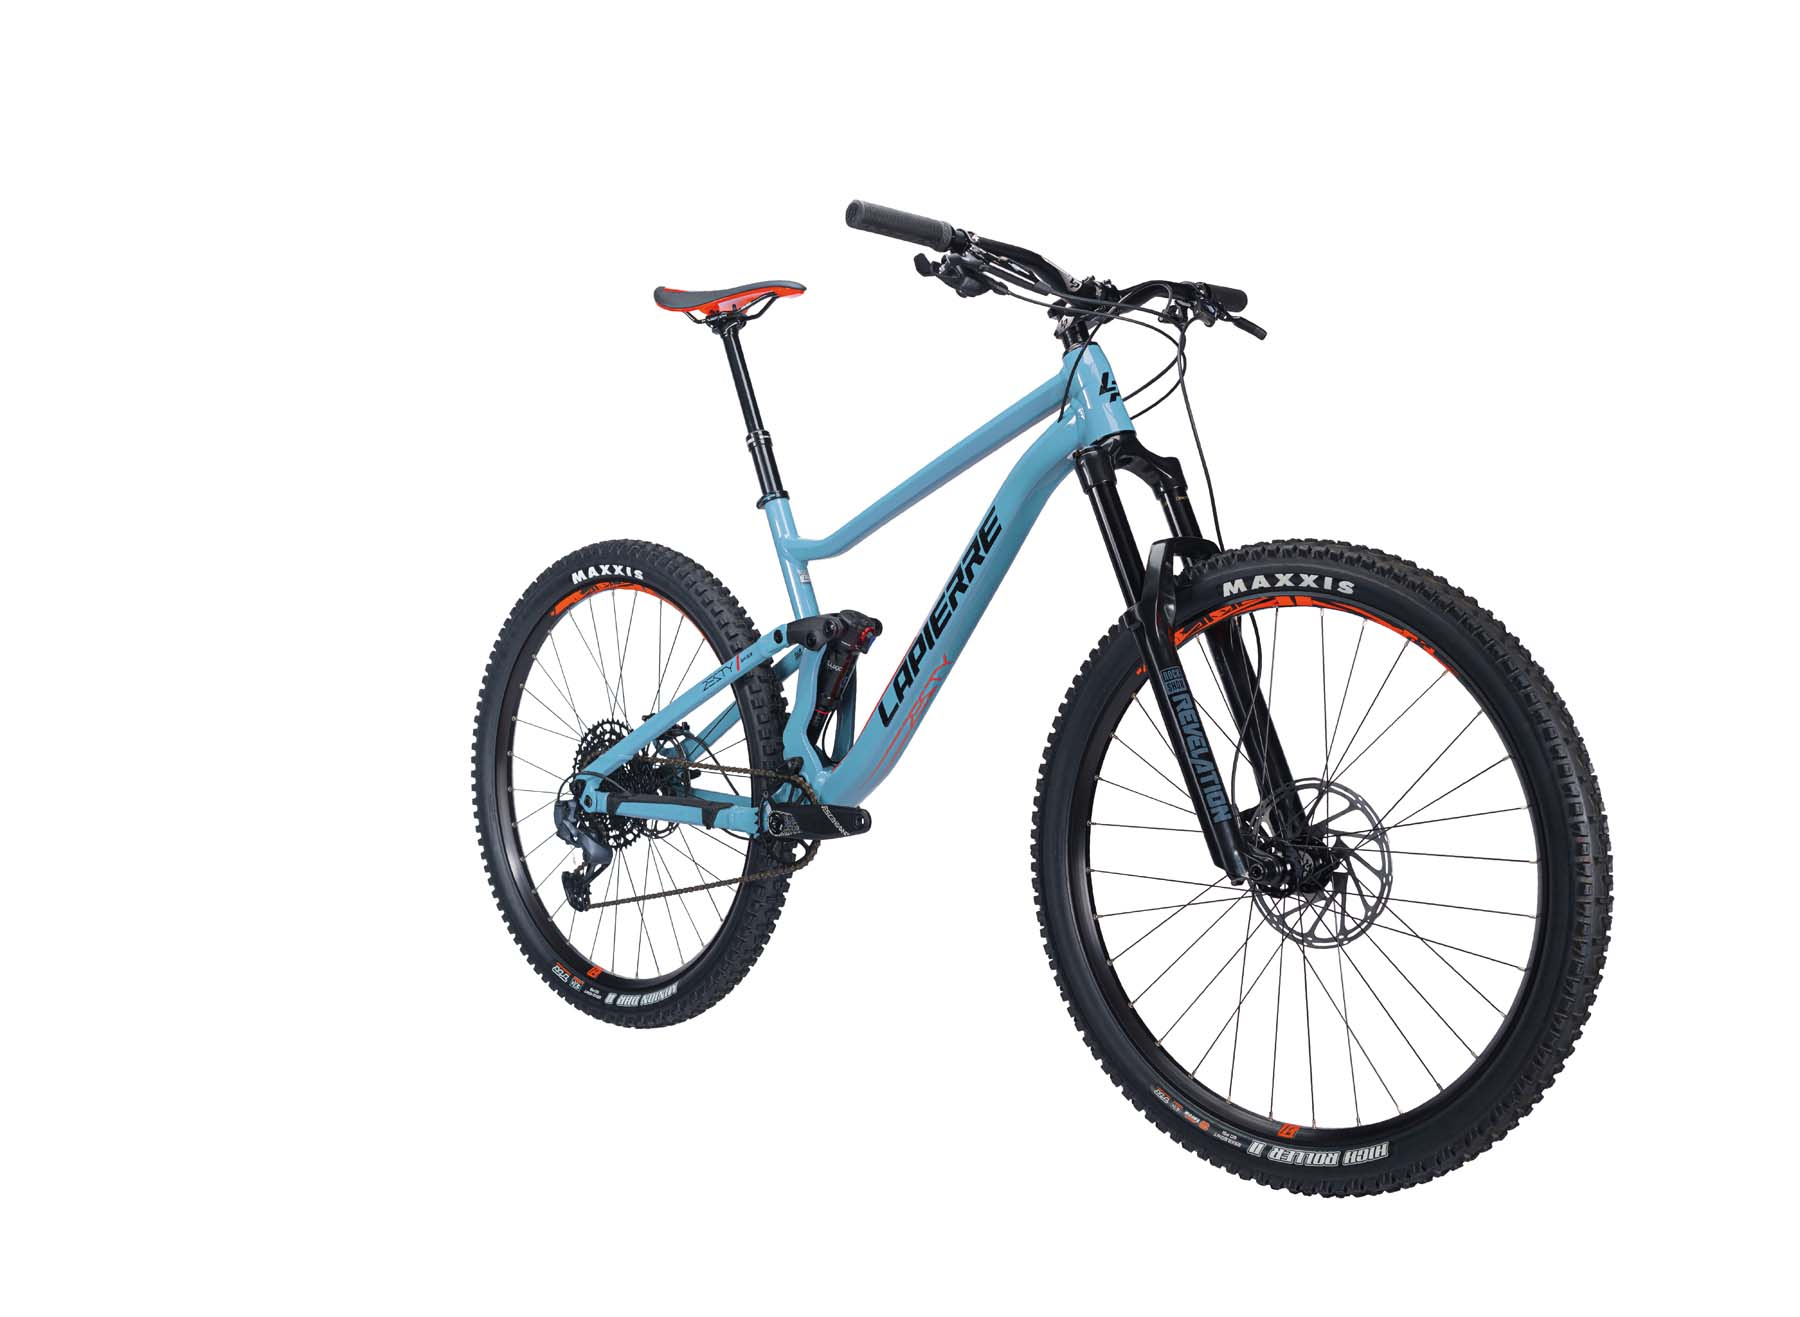 Lapierre Zesty AM 5.9 2021 All Mountain Bike 2